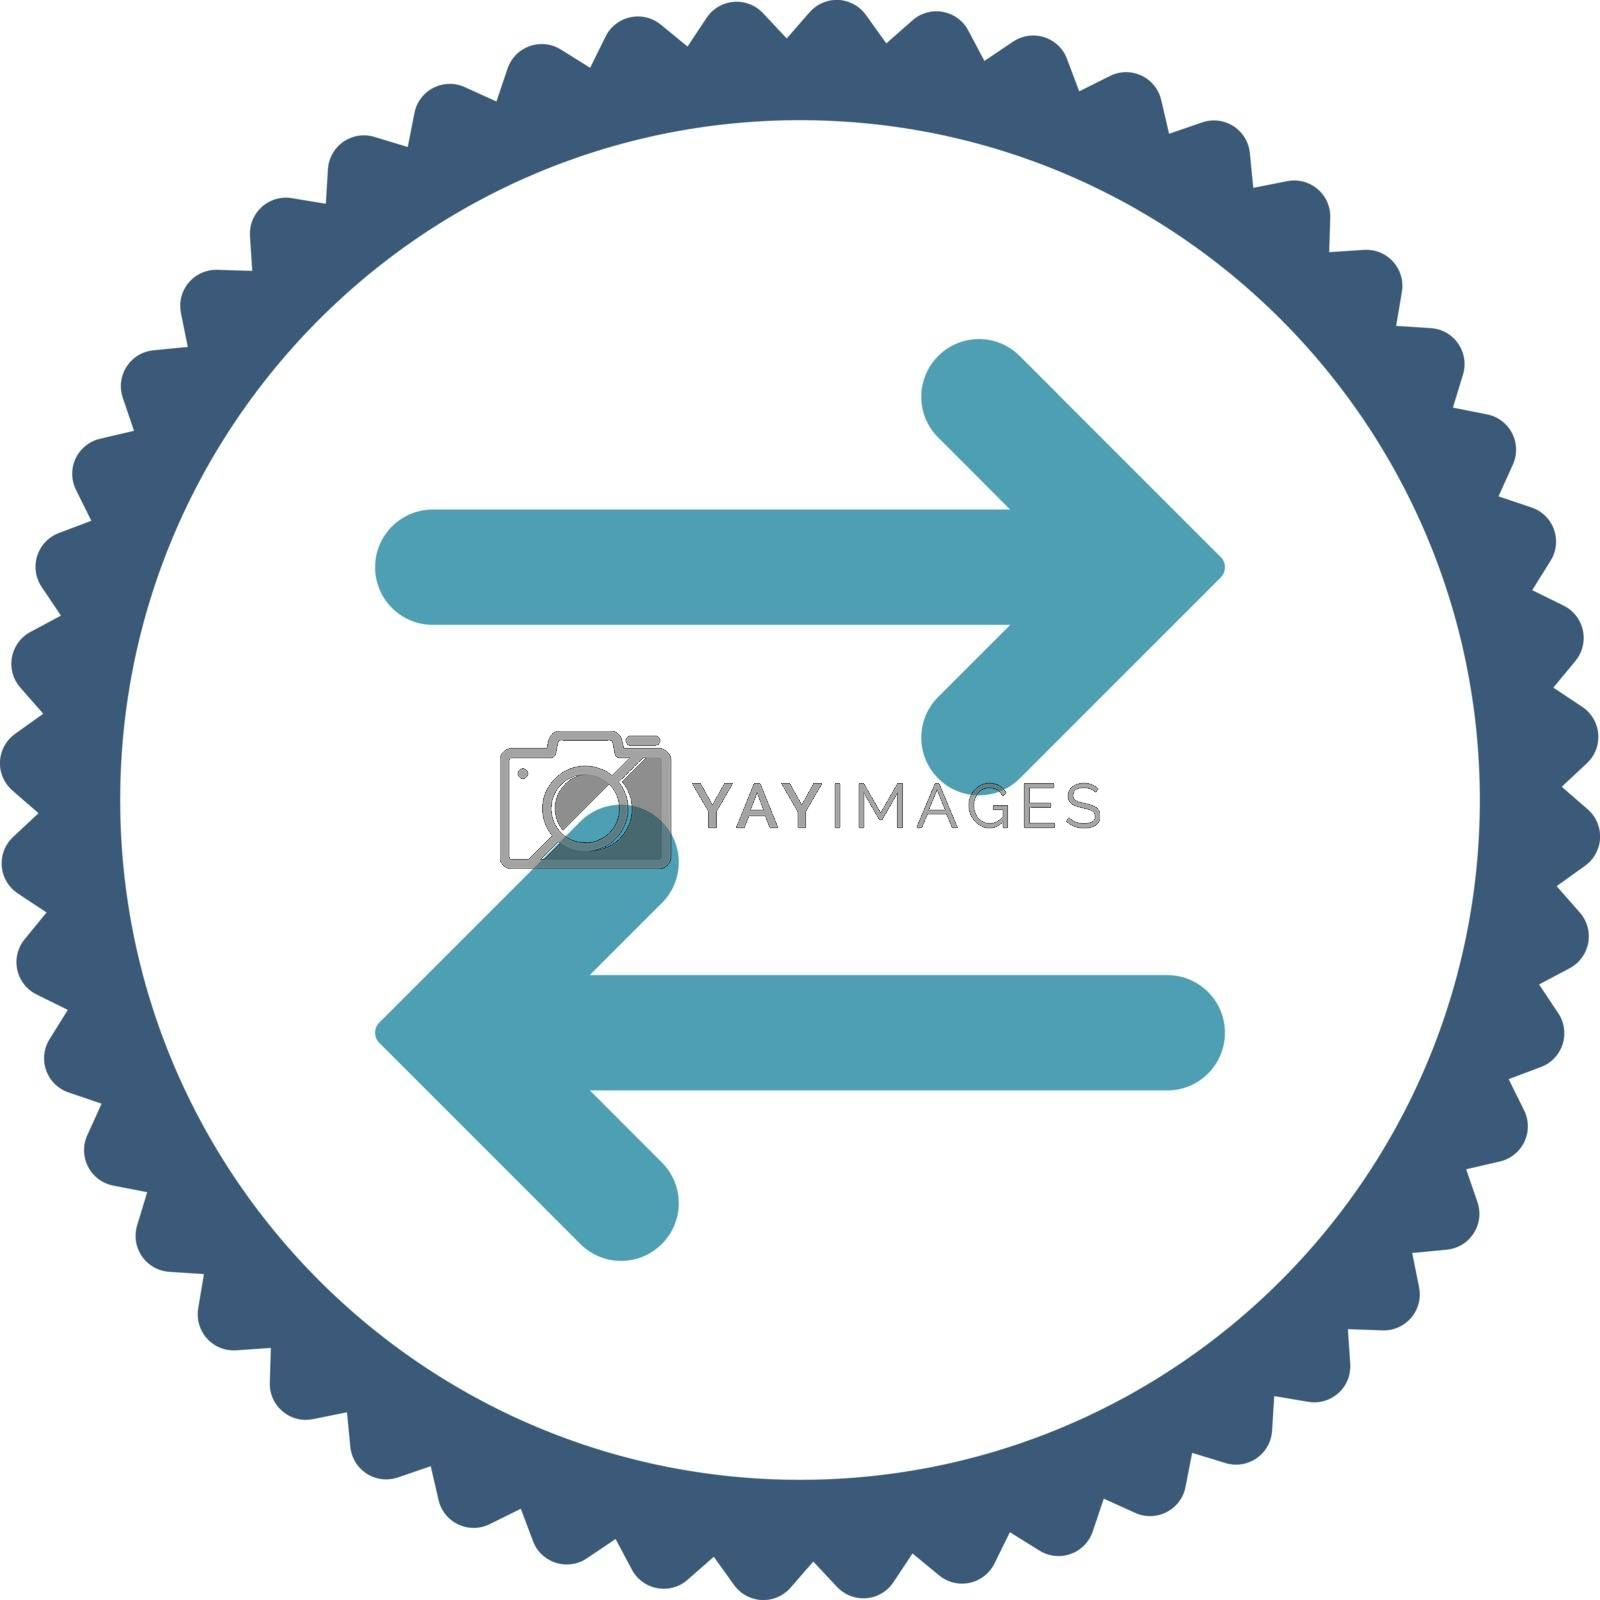 Flip Horizontal flat cyan and blue colors round stamp icon by Aha-Soft